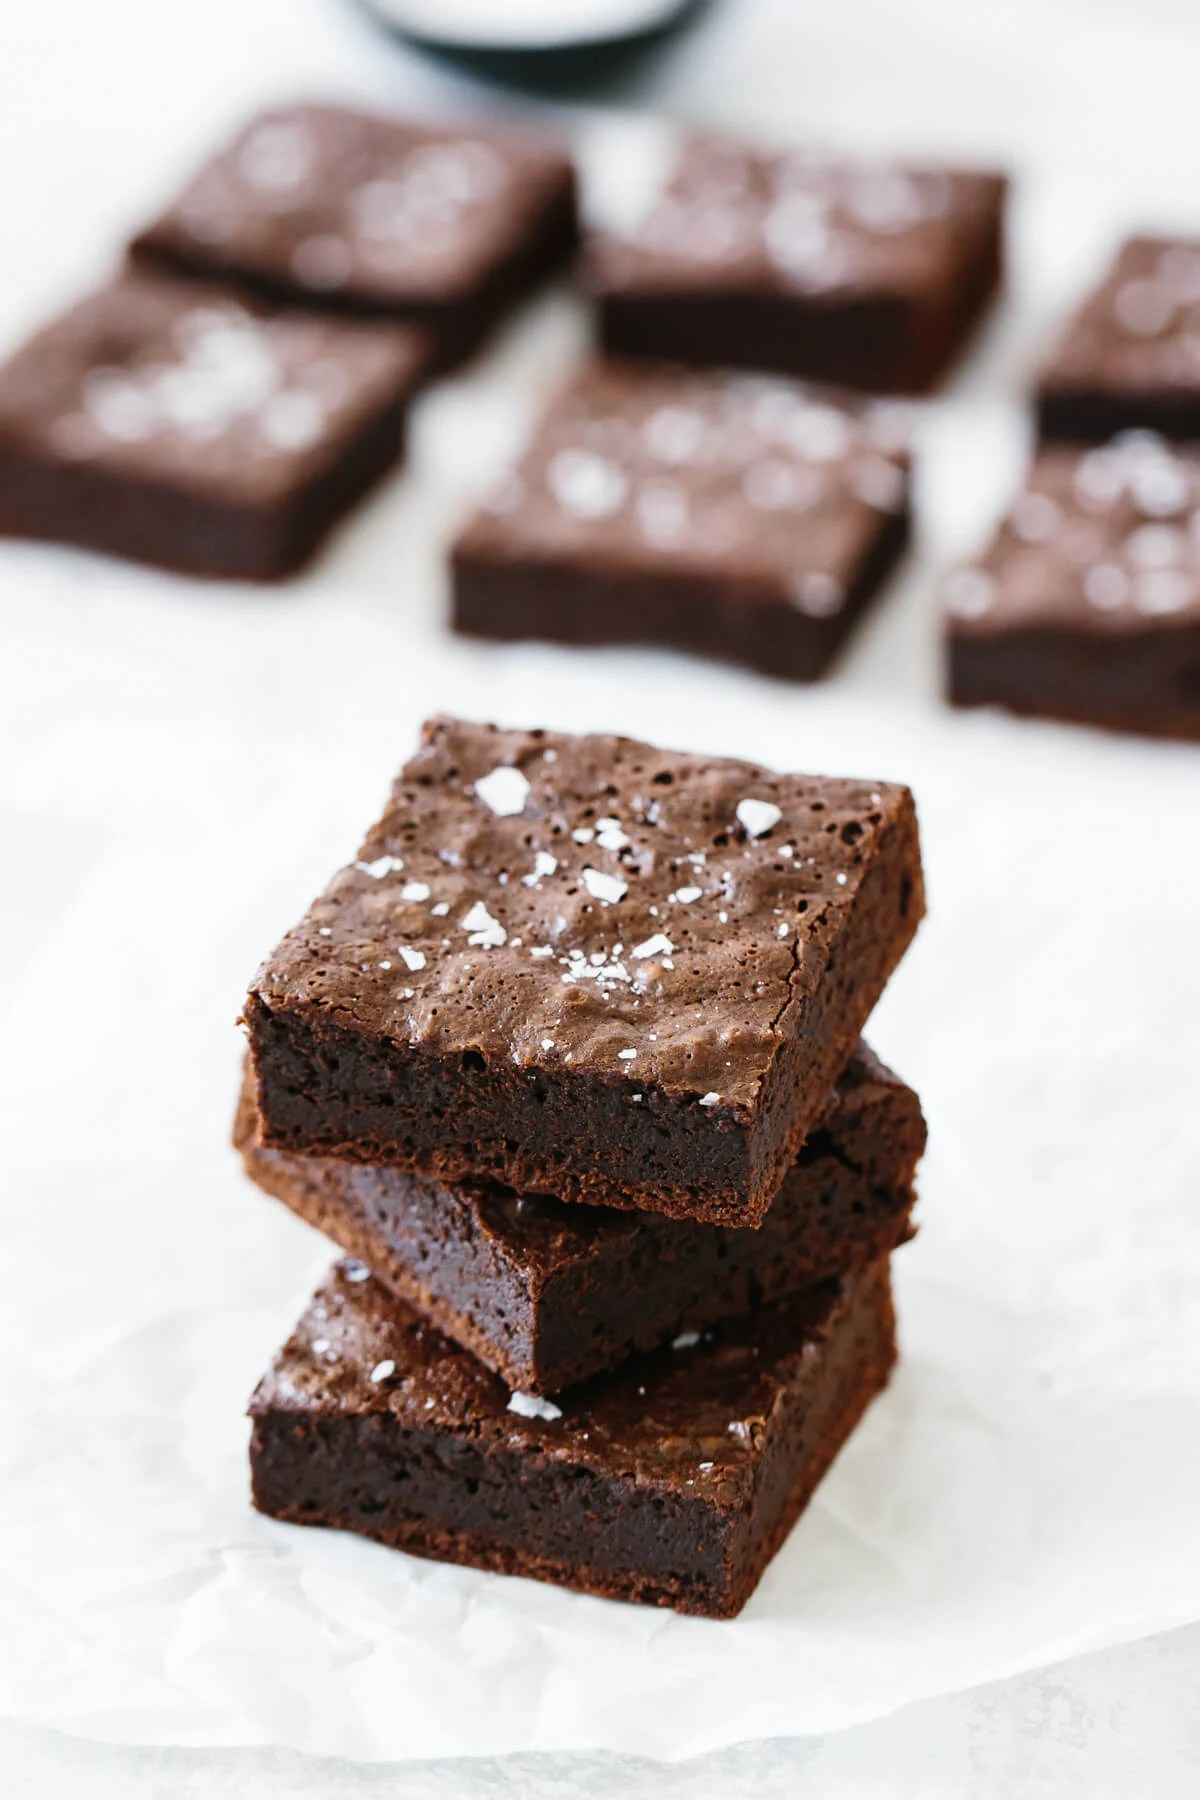 Several paleo brownies on a table.